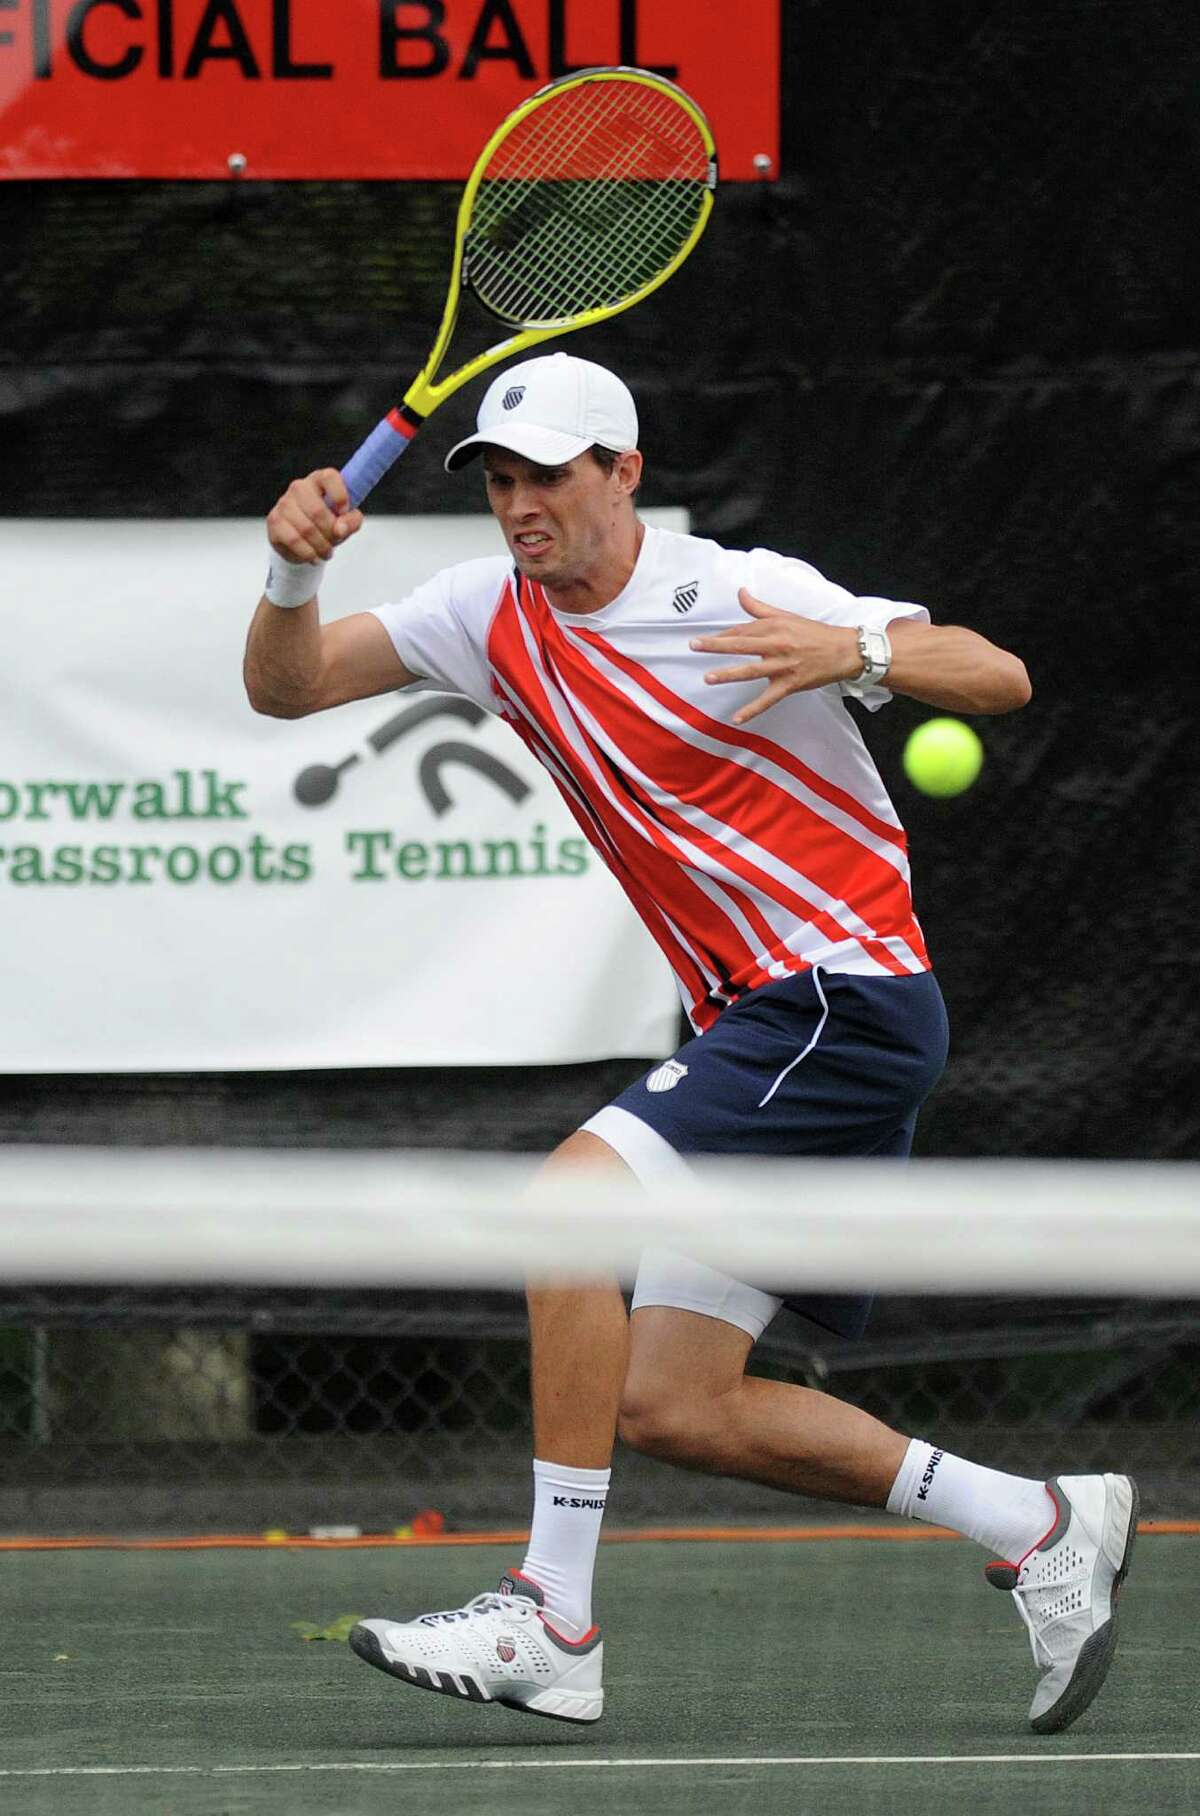 Olympic gold-medalist Mike Bryan plays alongside his twin brother, Bob Bryan, in a professional tennis exhibition at the Lake Club in Wilton, Conn., on Saturday, August 25, 2012.